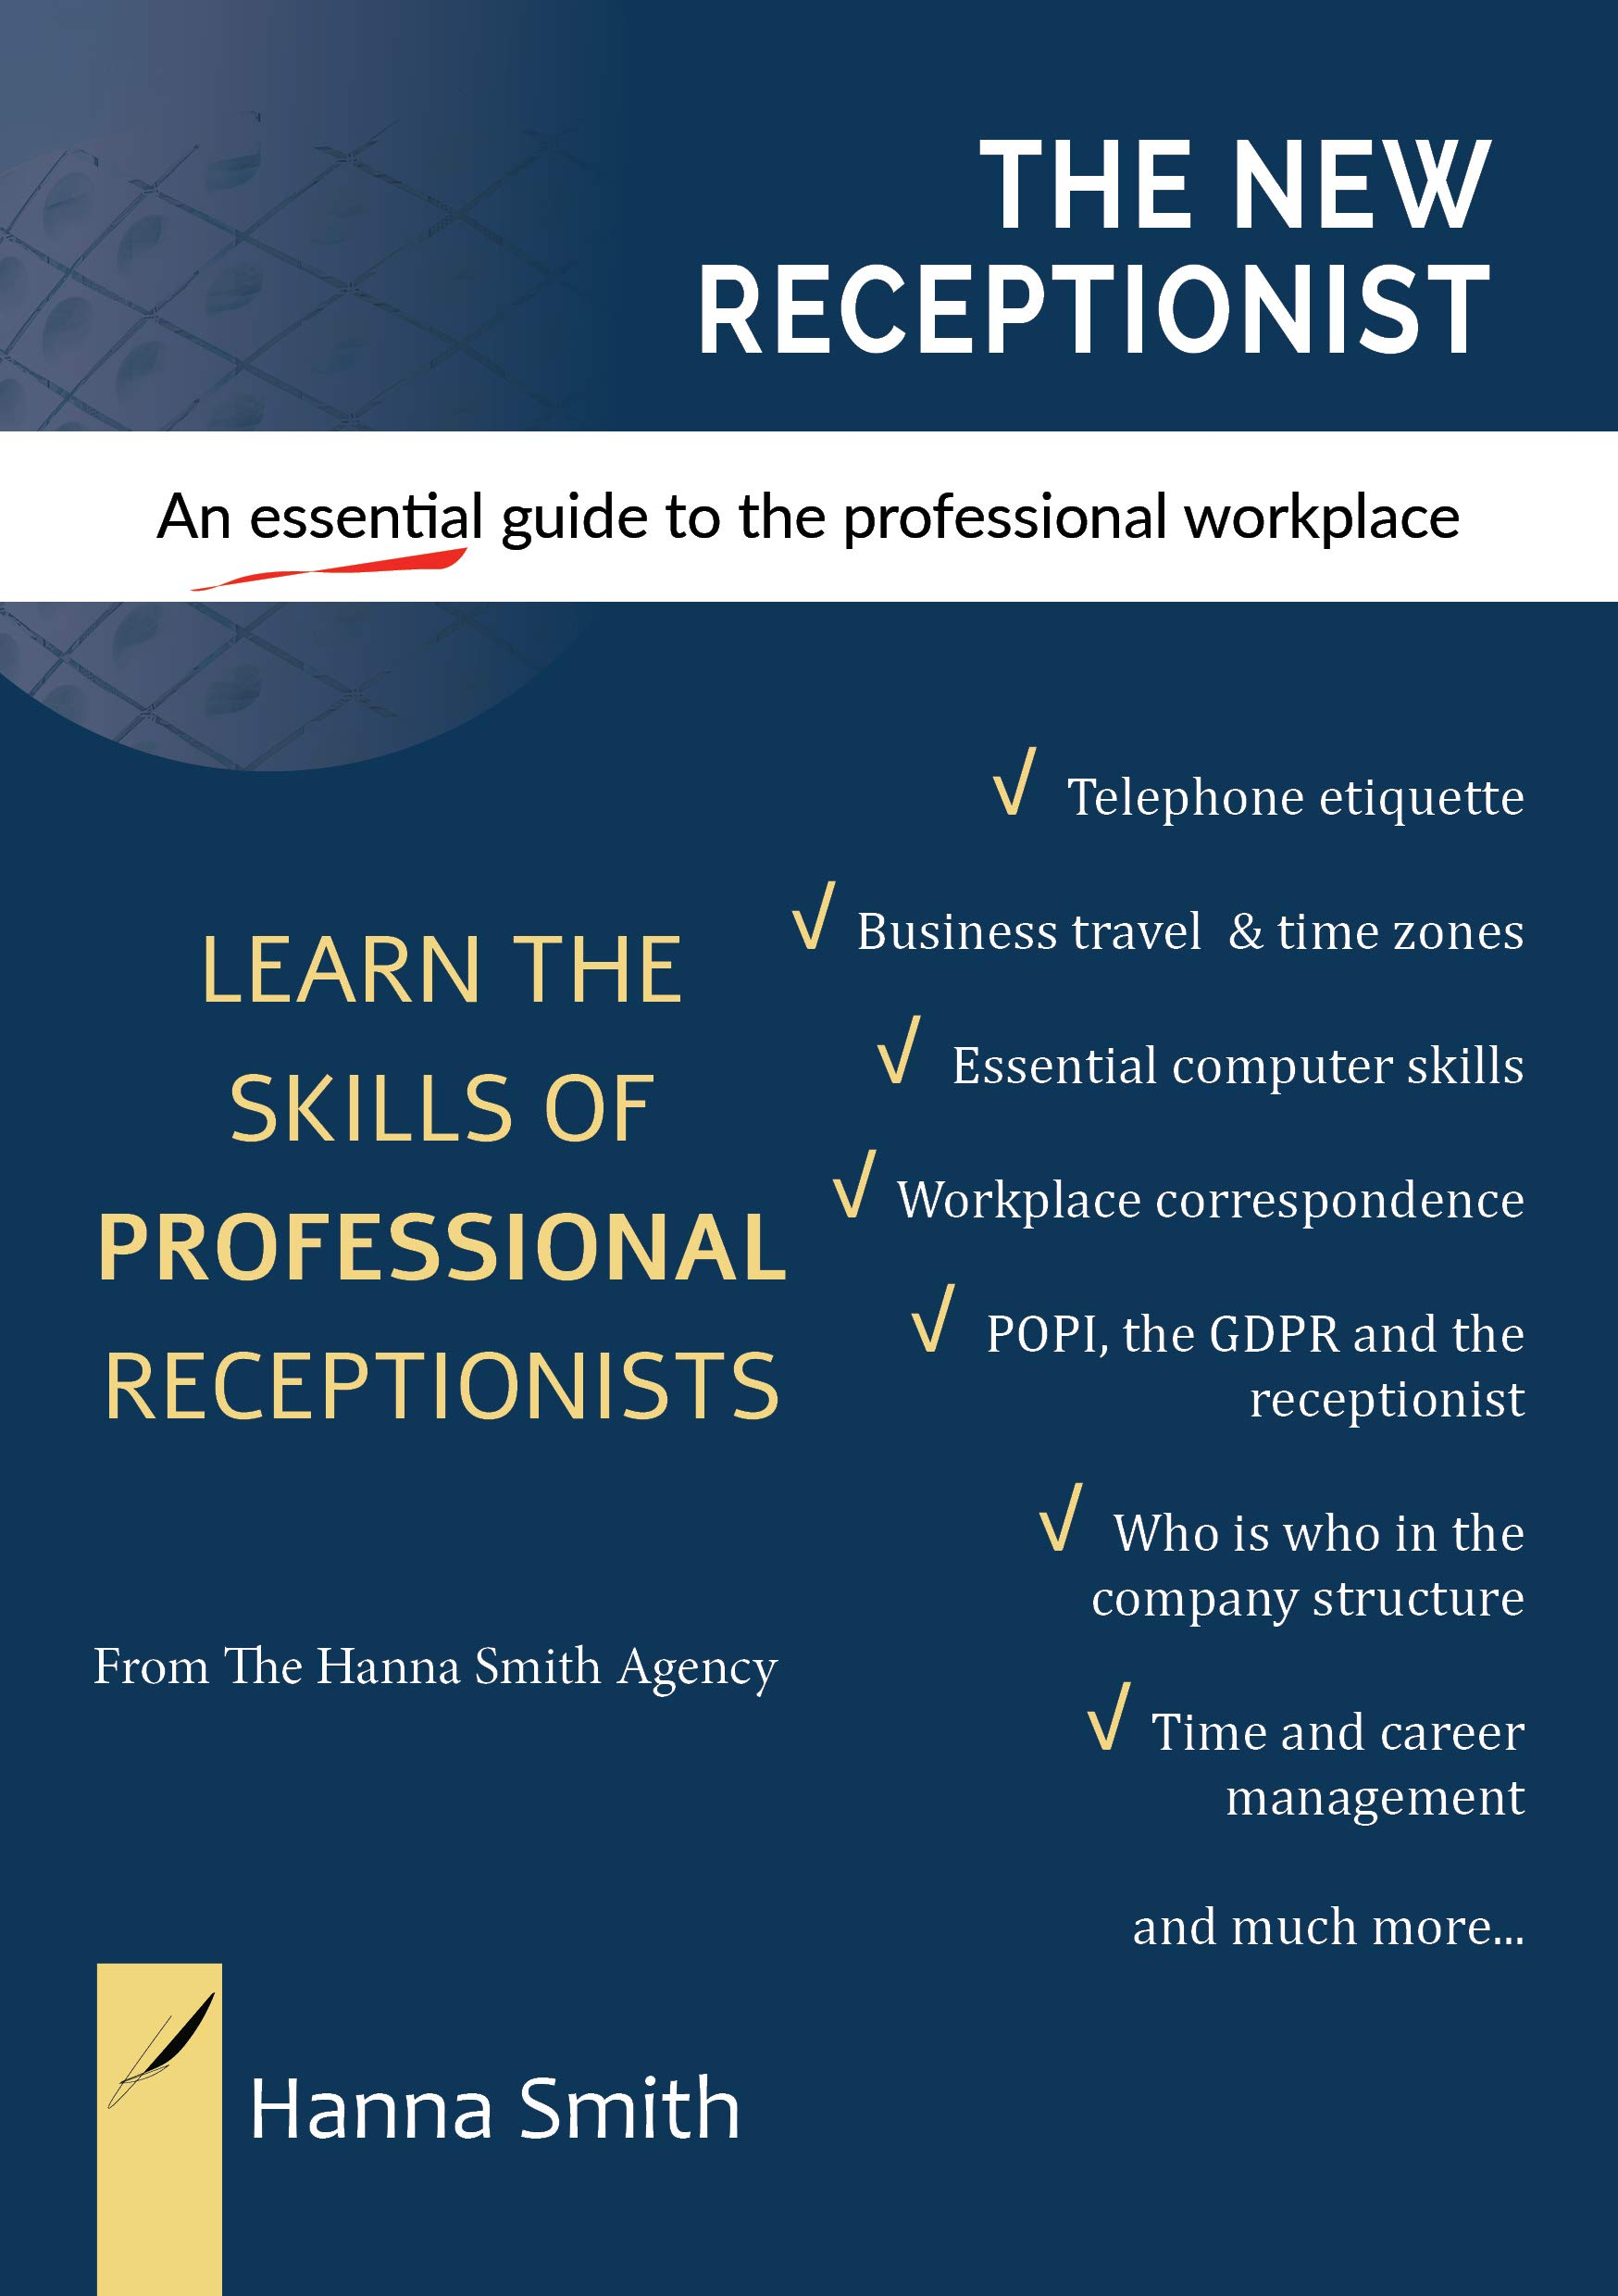 The New Receptionist: An essential guide to the professional workplace